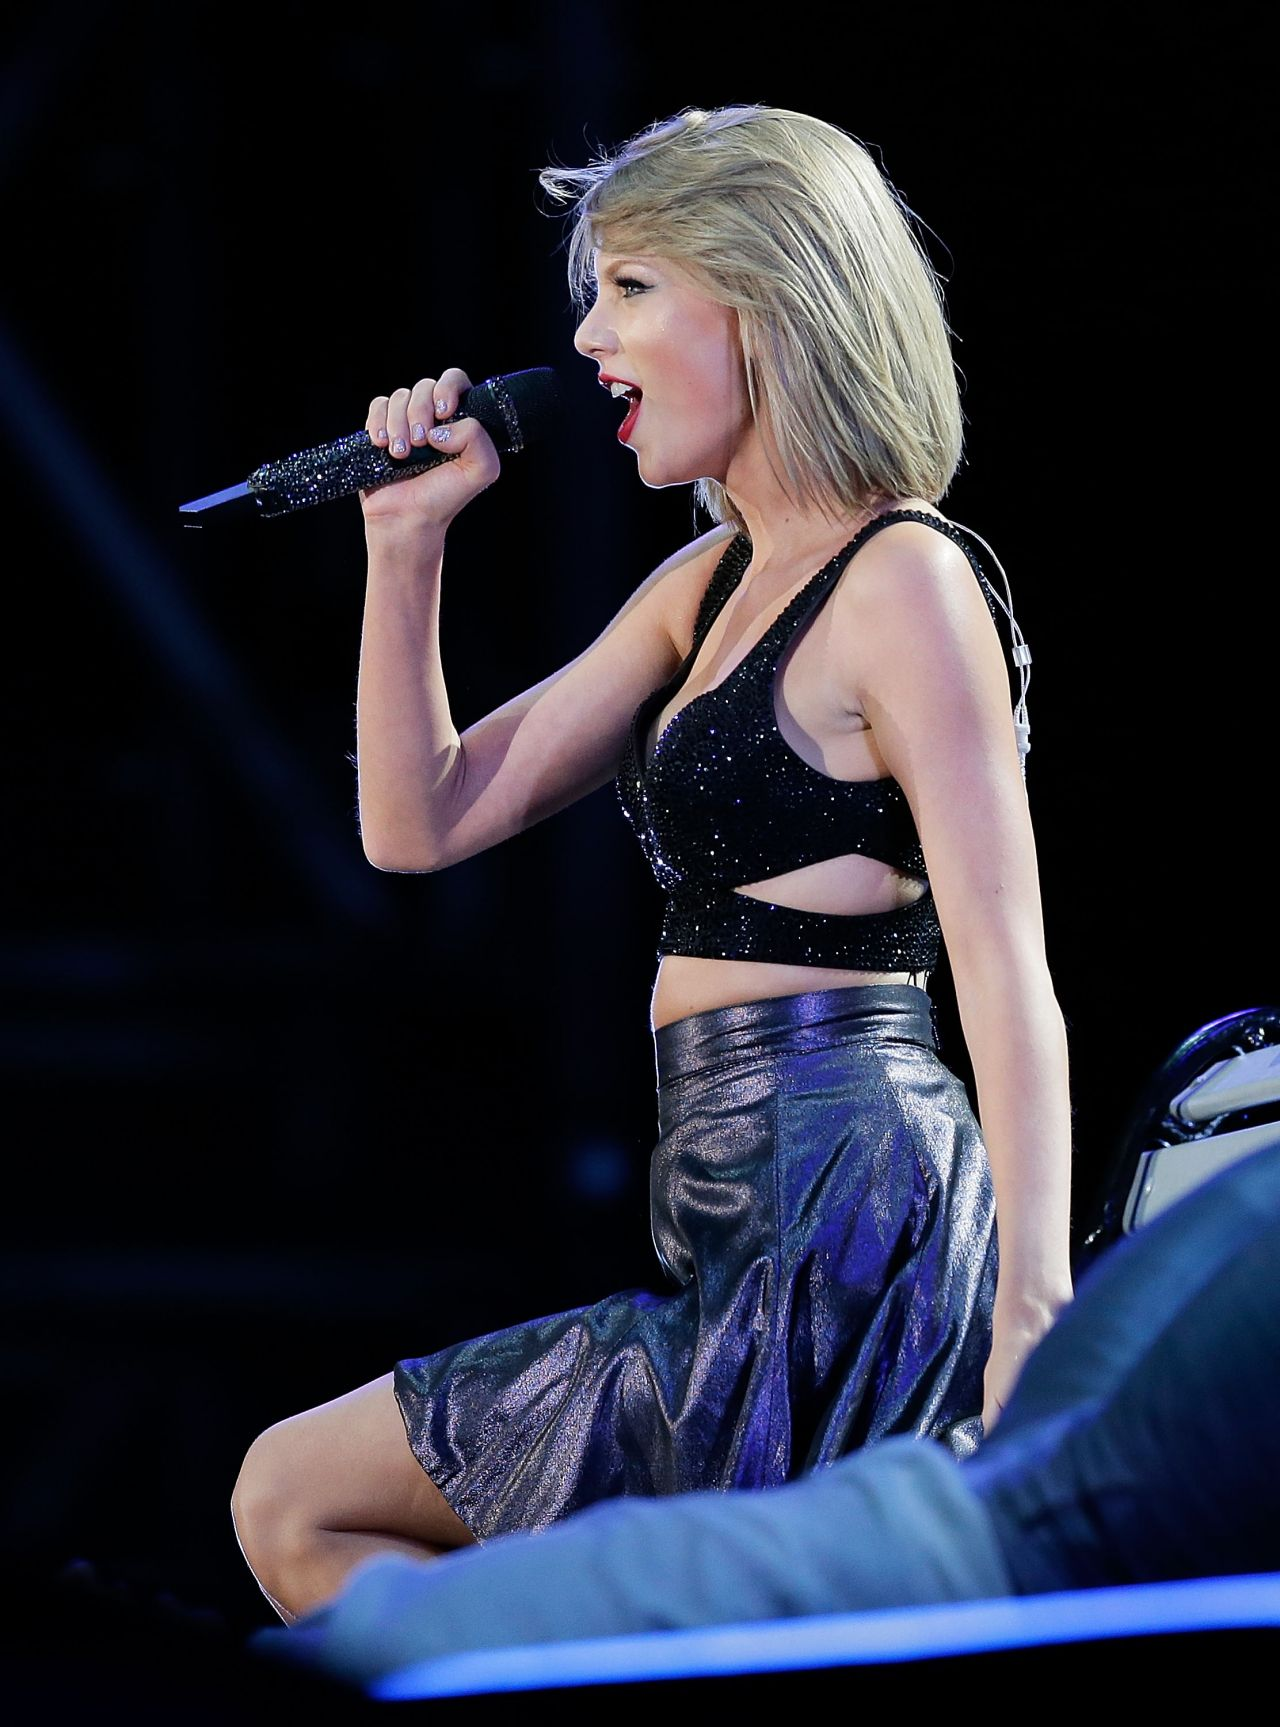 Taylor Swift Performs at 1989 World Tour in Sydney 1128